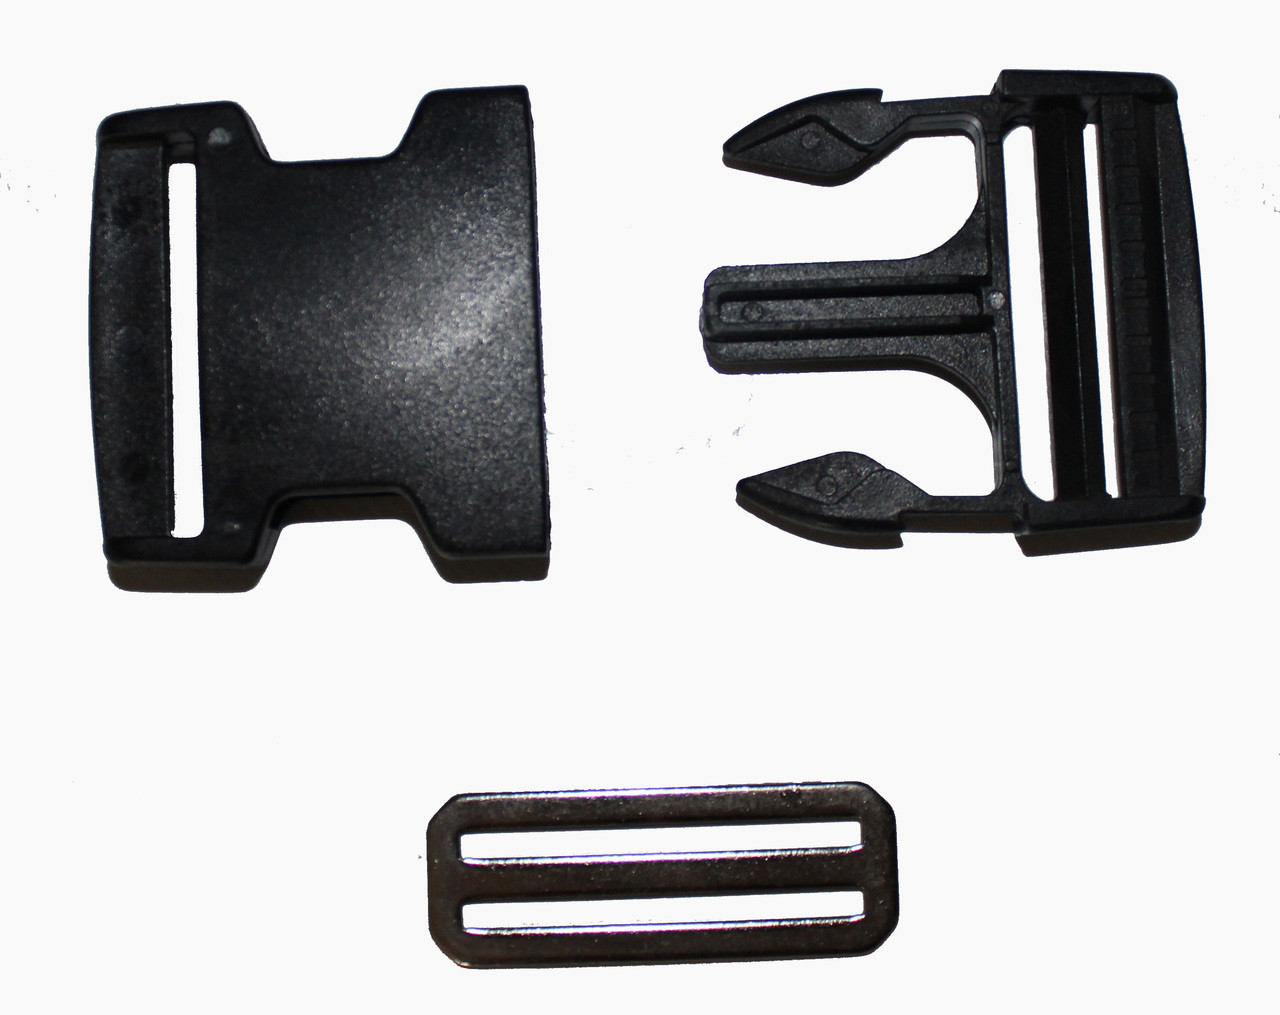 50mm side release buckle and industrial plastic glide for adjusting the strap